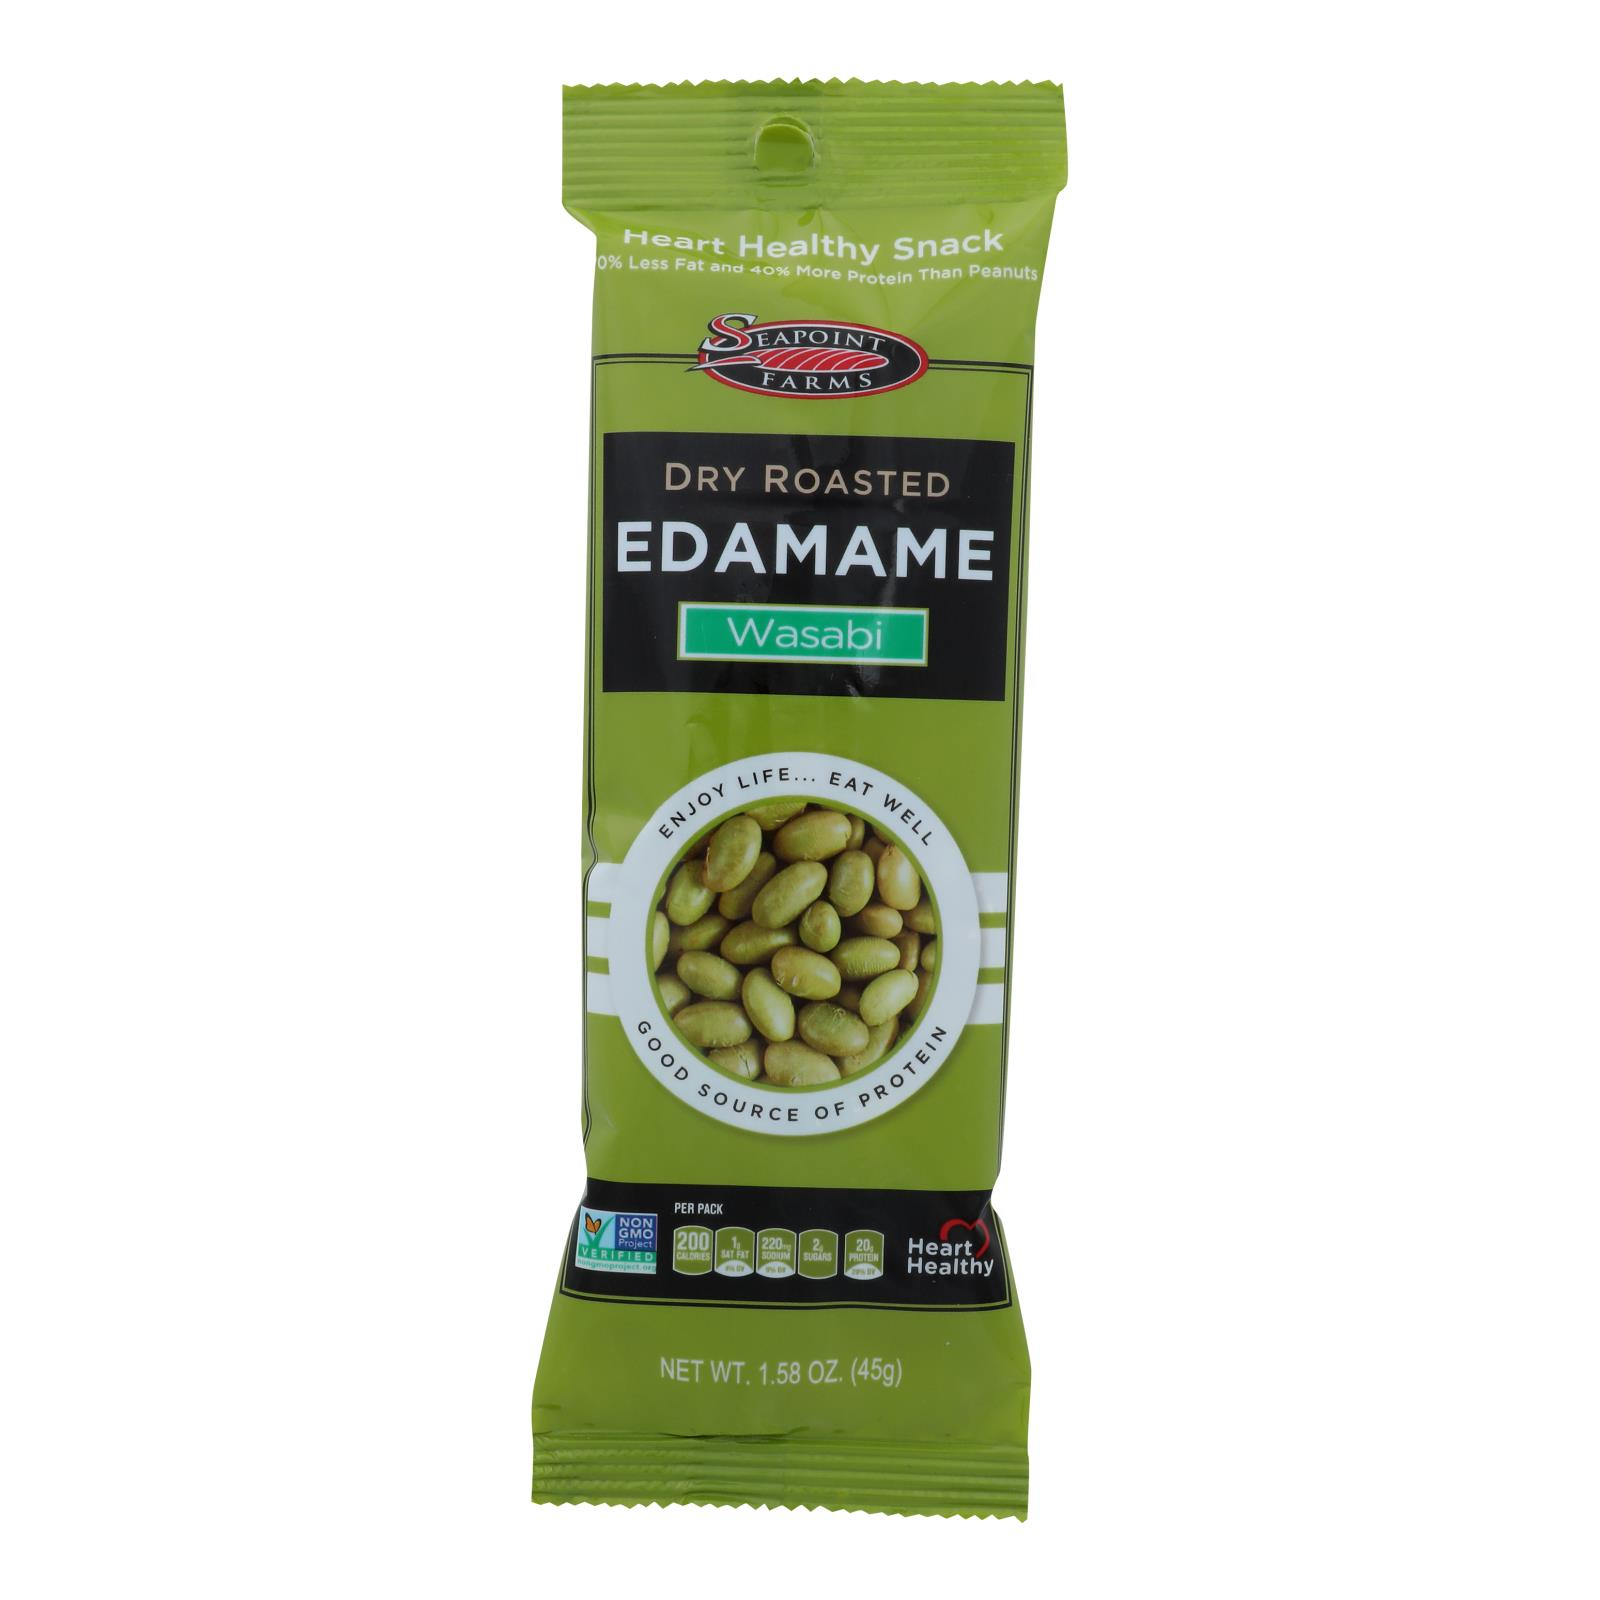 Seapoint Farms Edamame - Dry Roasted - Spicy Wasabi - 1.58 oz - Case of 12